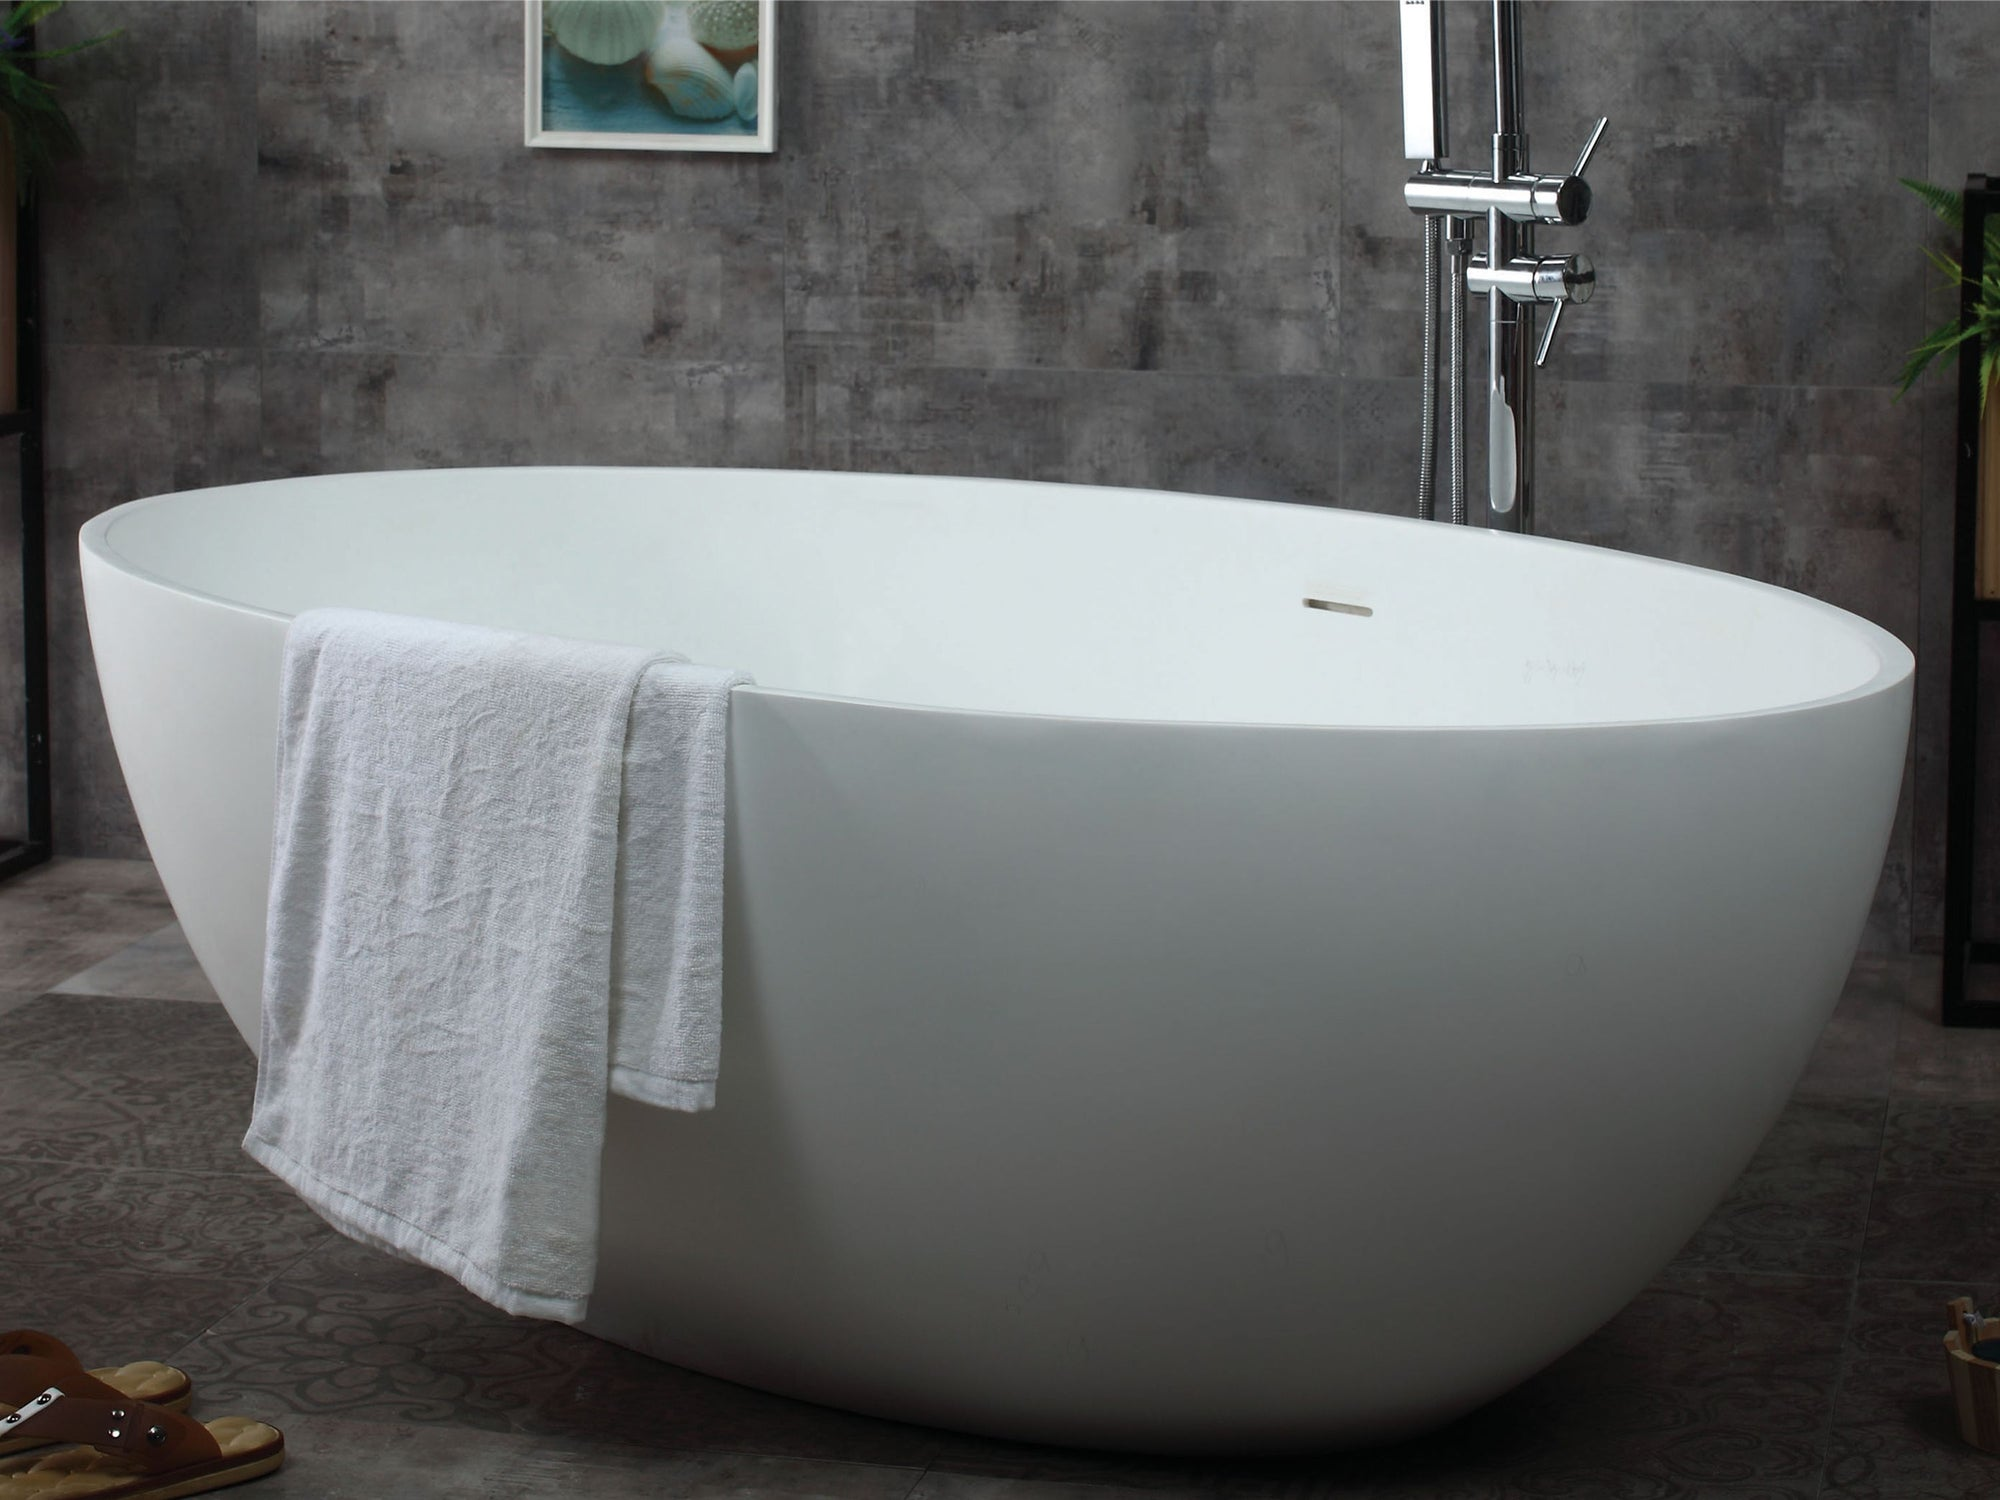 Alfi Brand Ab9941 67 White Oval Solid Surface Smooth Resin